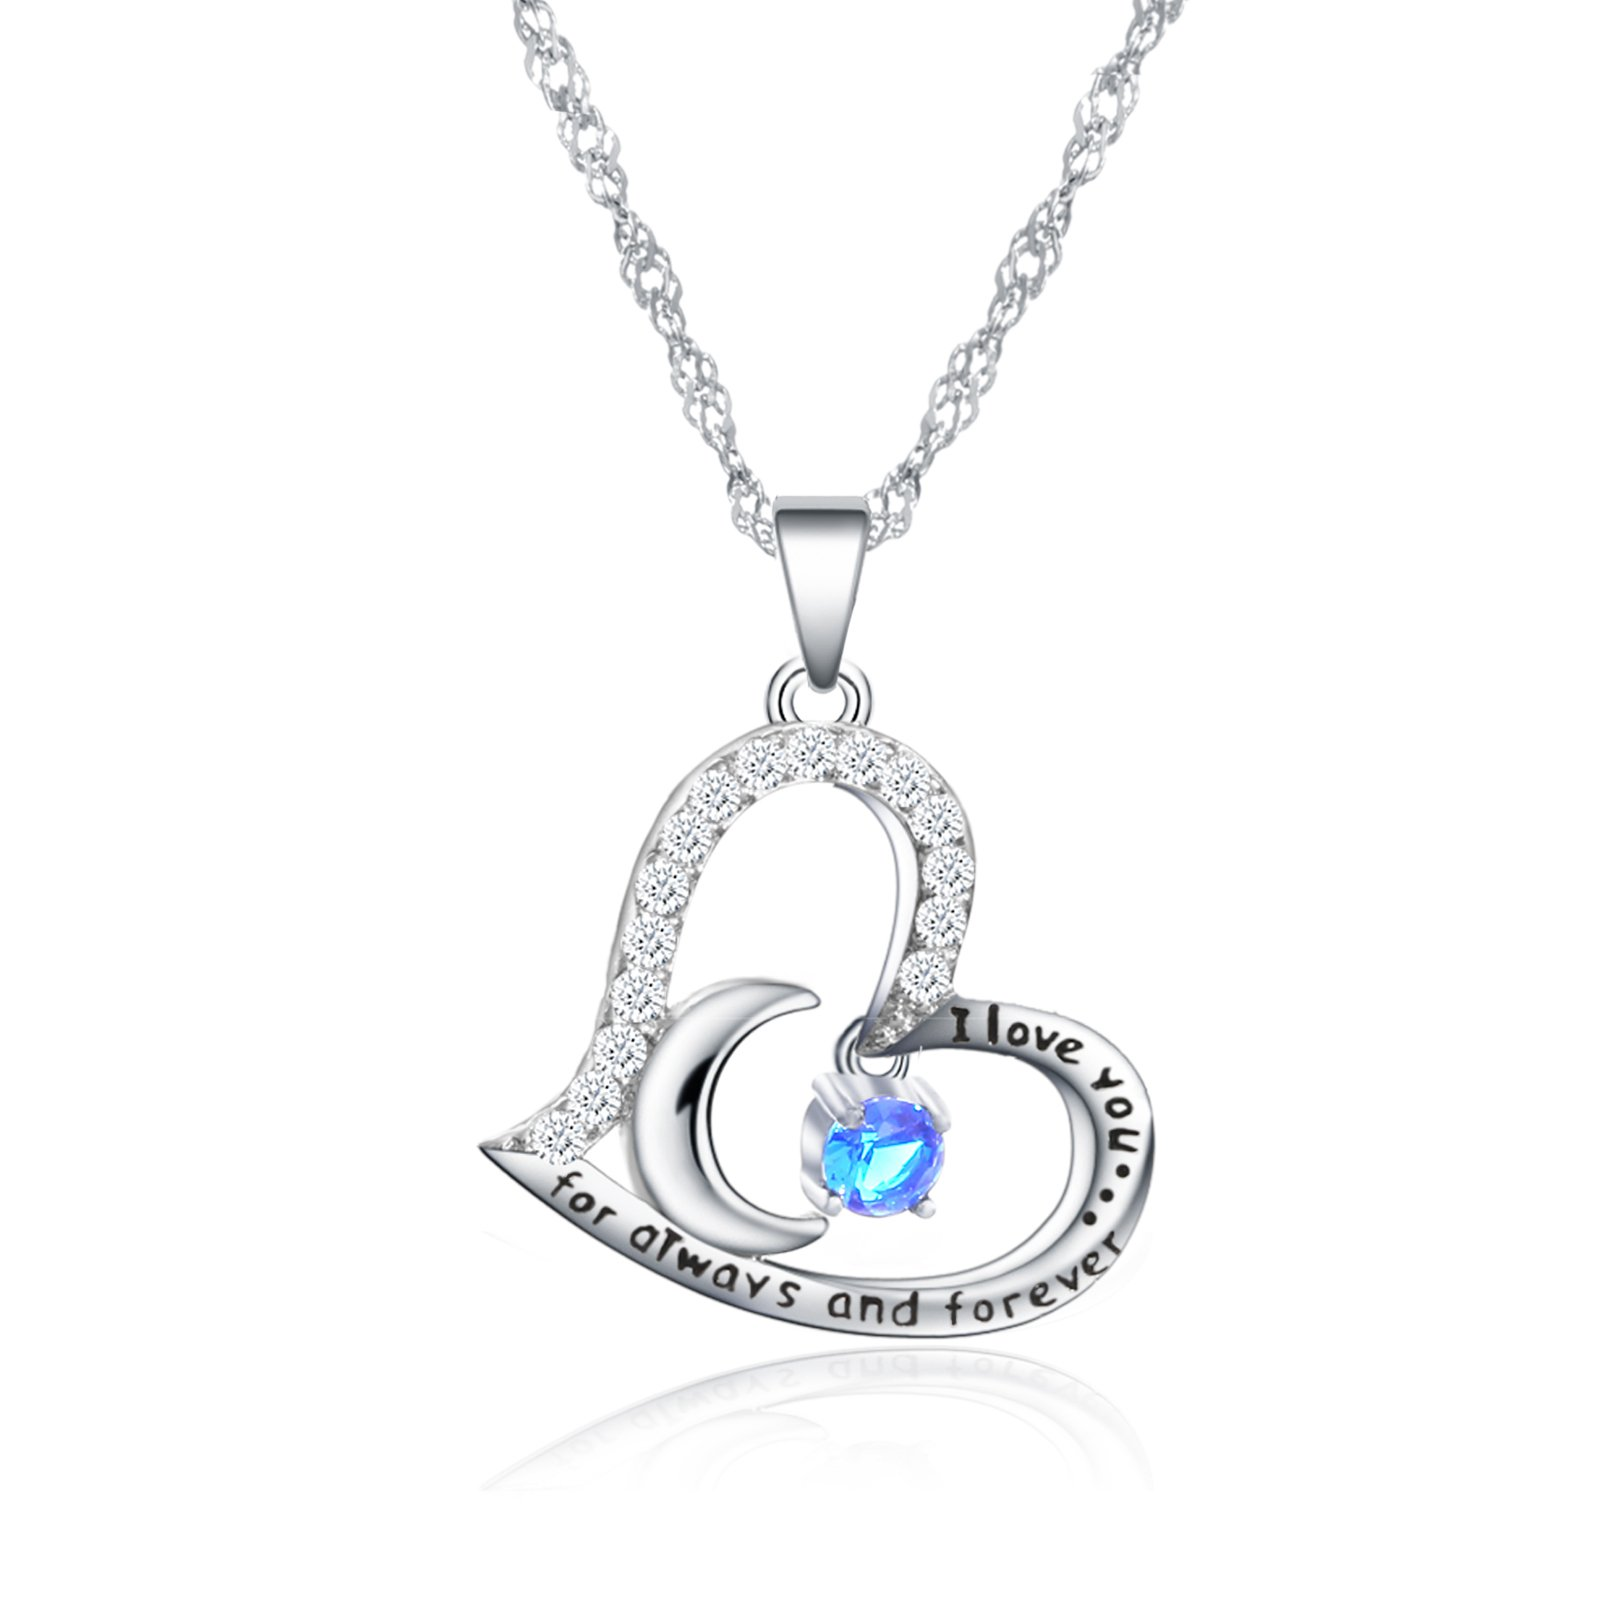 Valentine's Day Gift Fine Jewelry Gift Sterling Silver Heart Pendant Necklace Birthday Necklace I Love You For Always and Forever Dancing Birthstone (09-September-Sapphire)